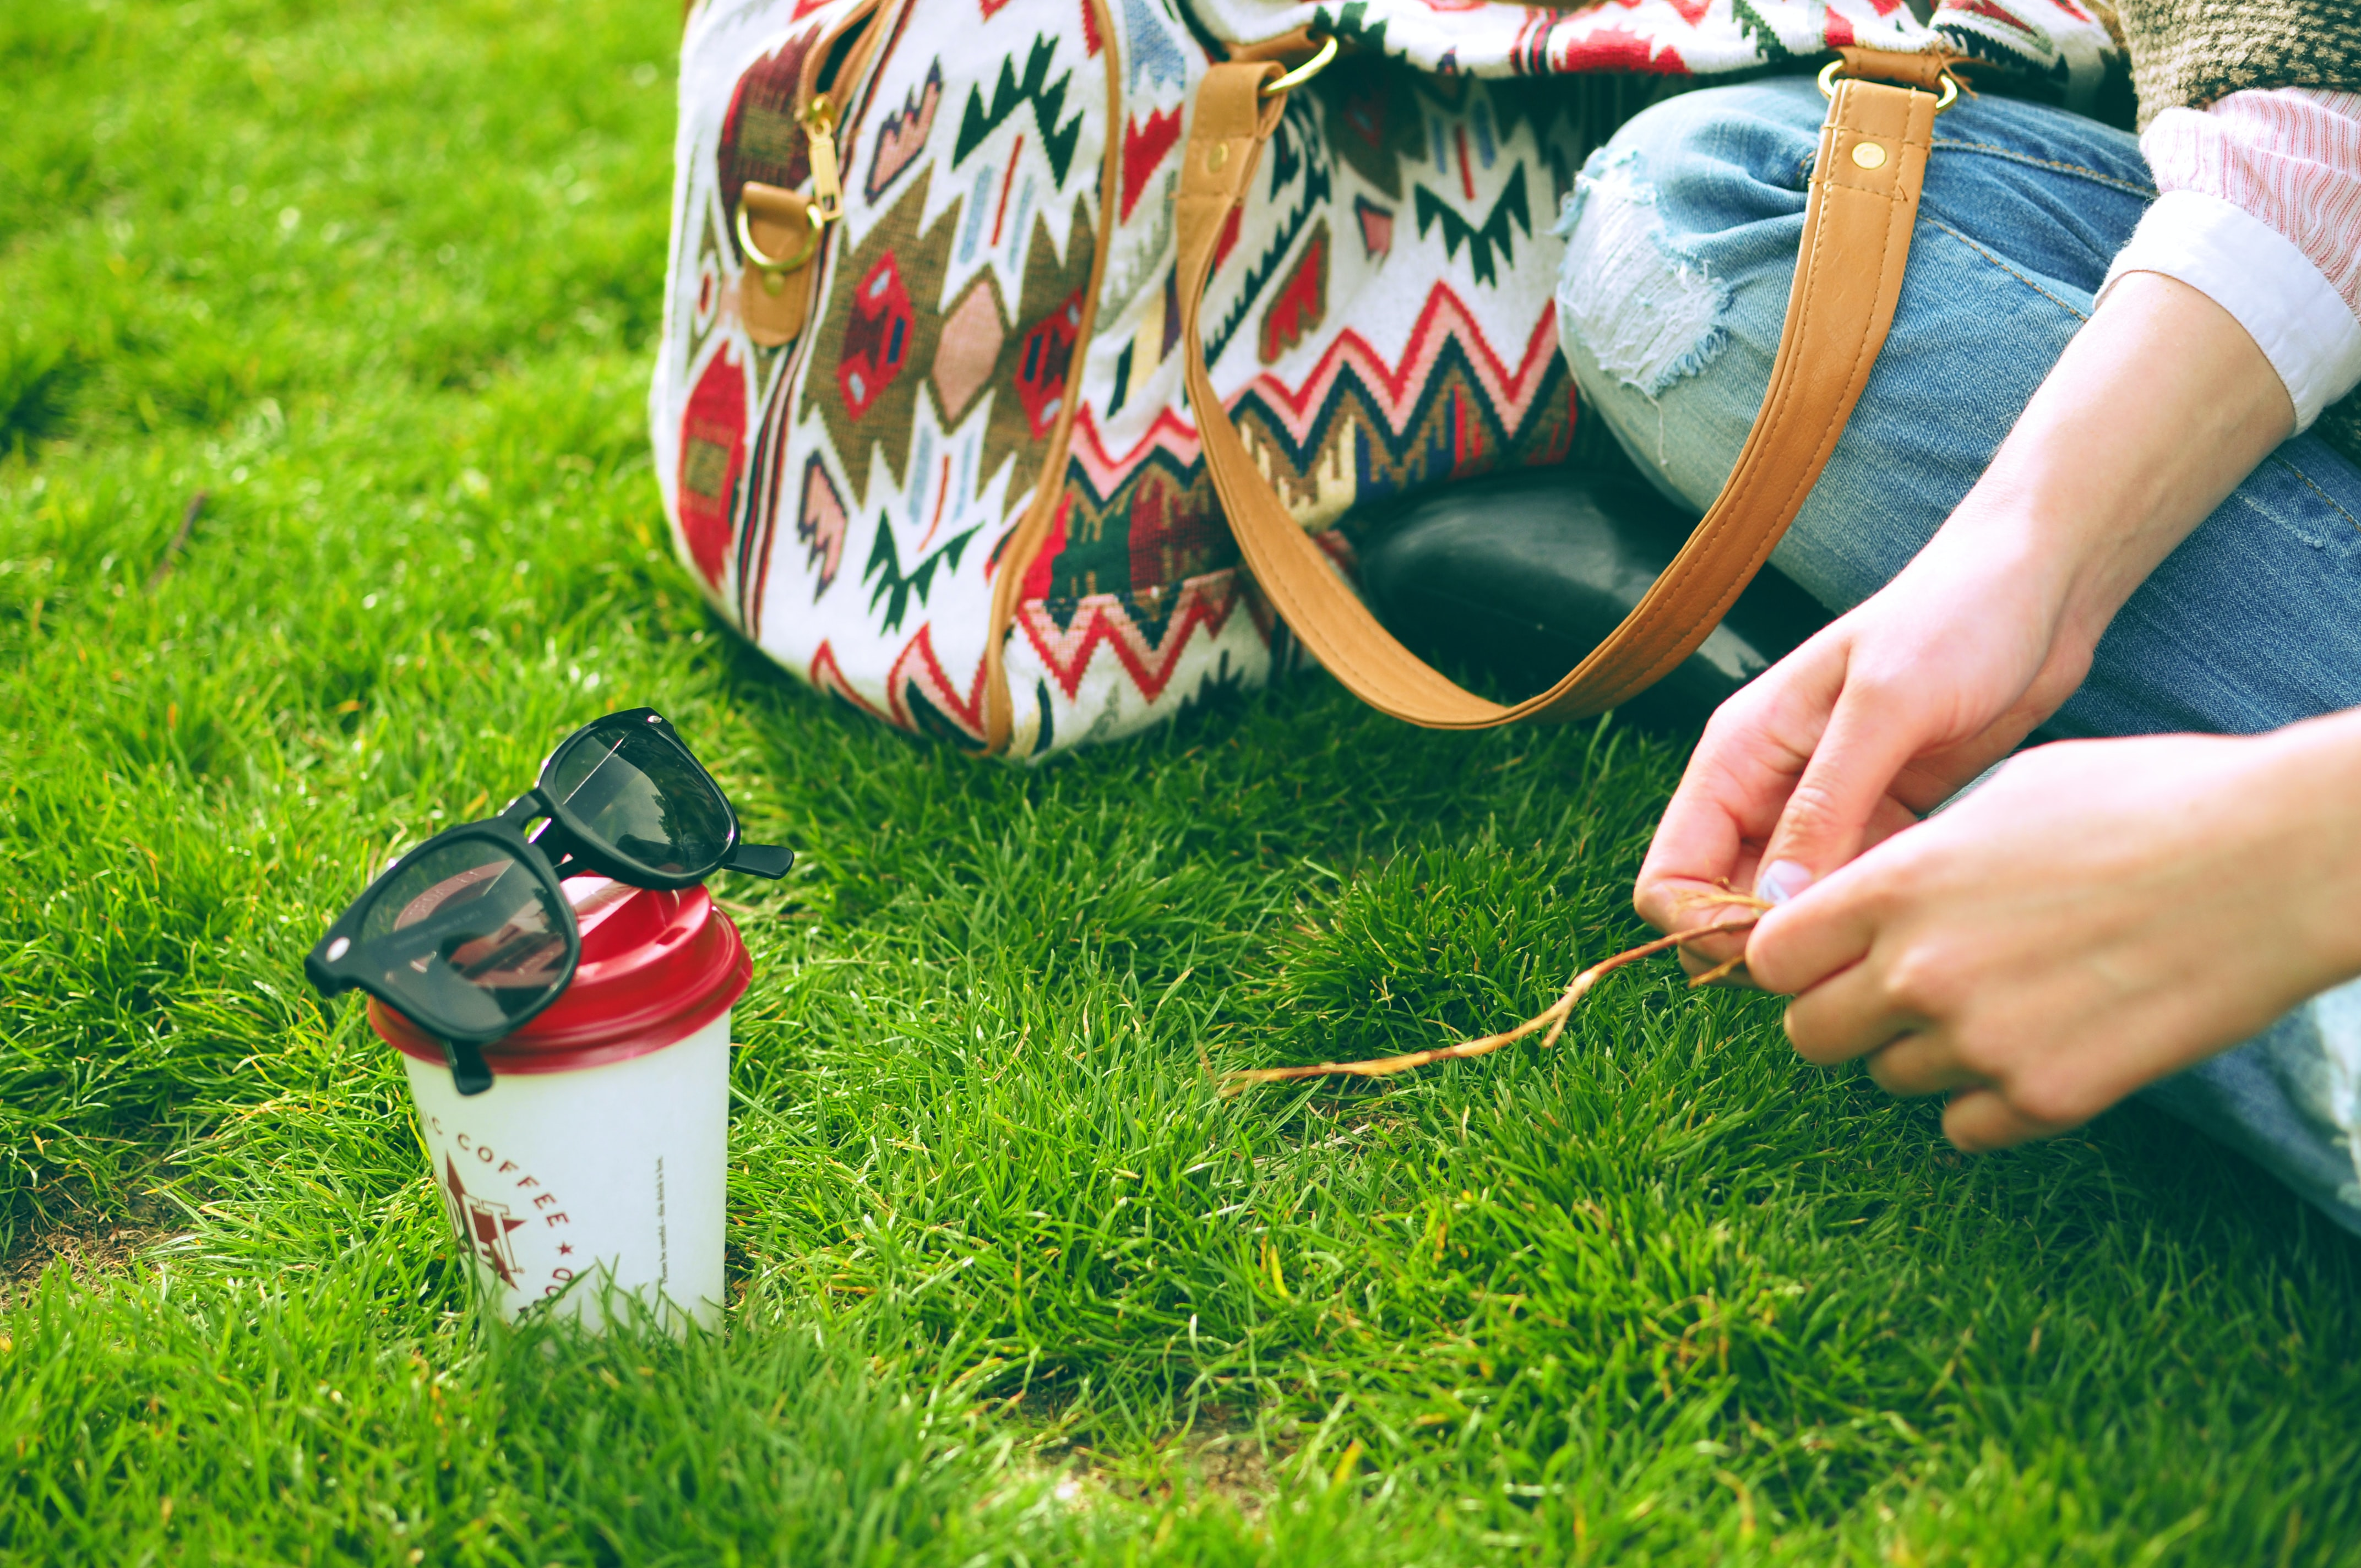 person sitting on grass near bag and cup at daytime